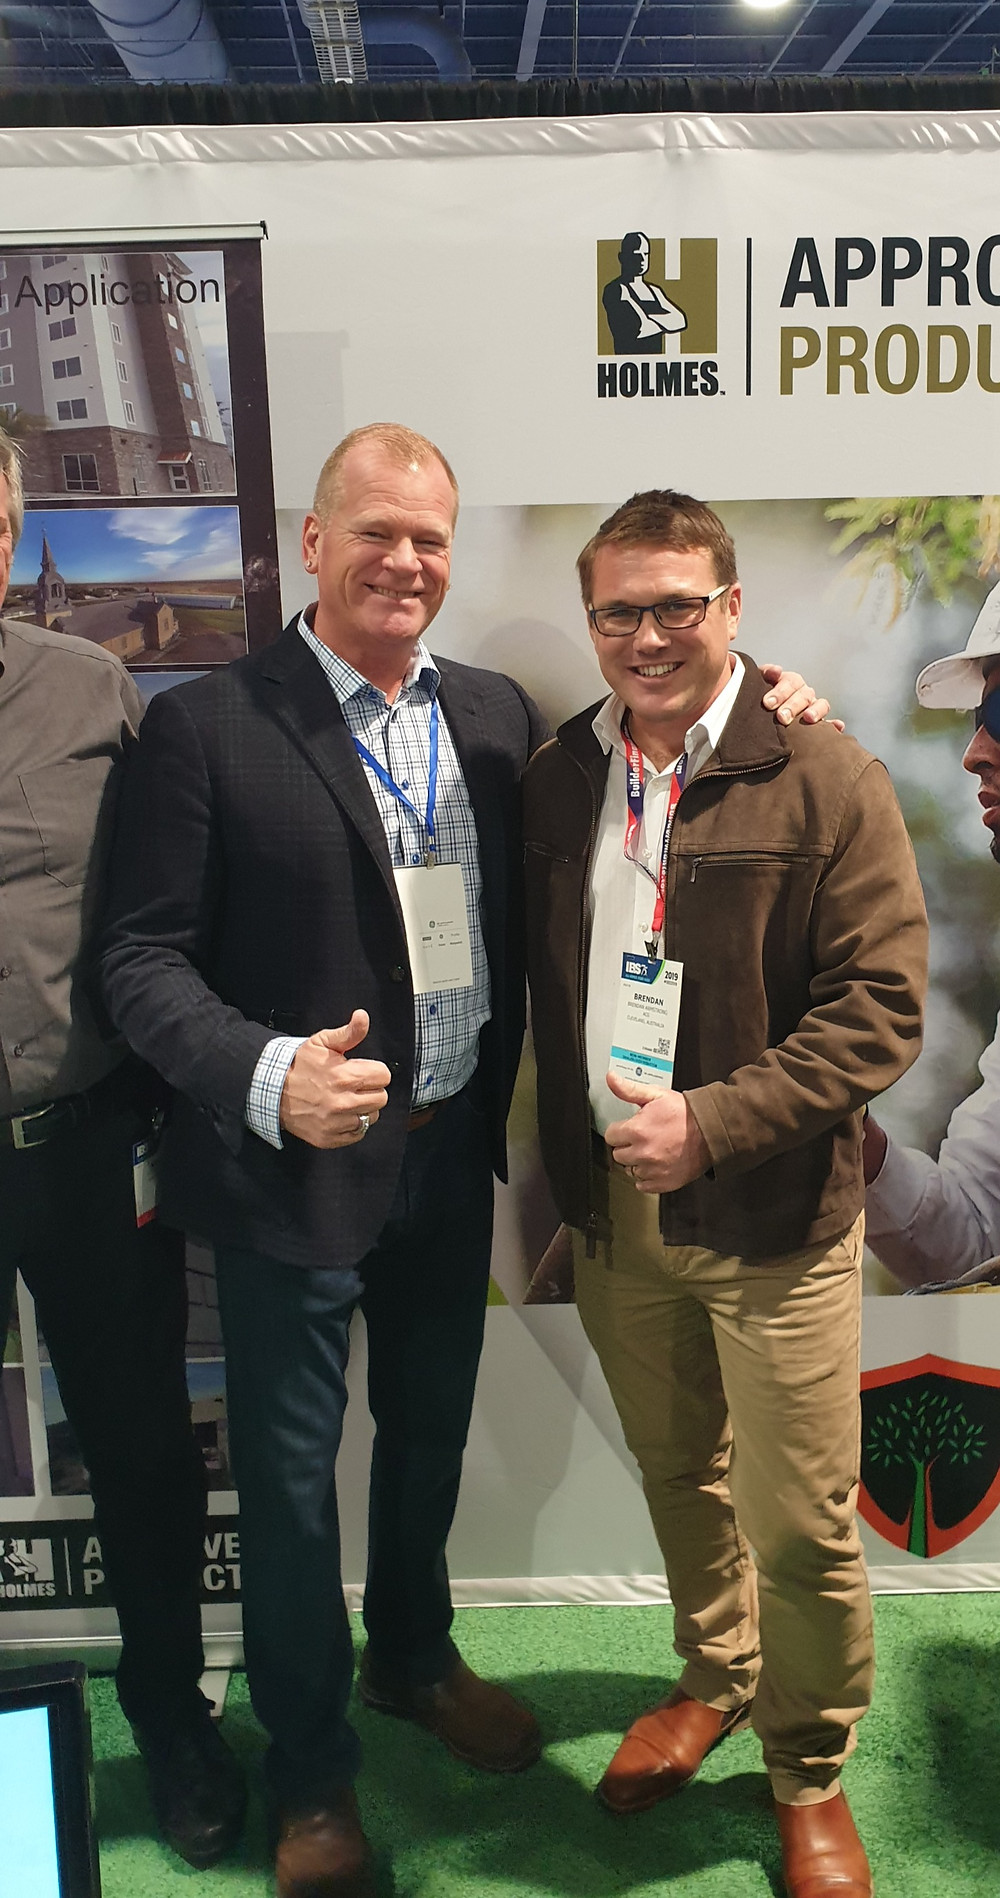 Mike Holmes & Brendan Armstrong discuss Spray Cork